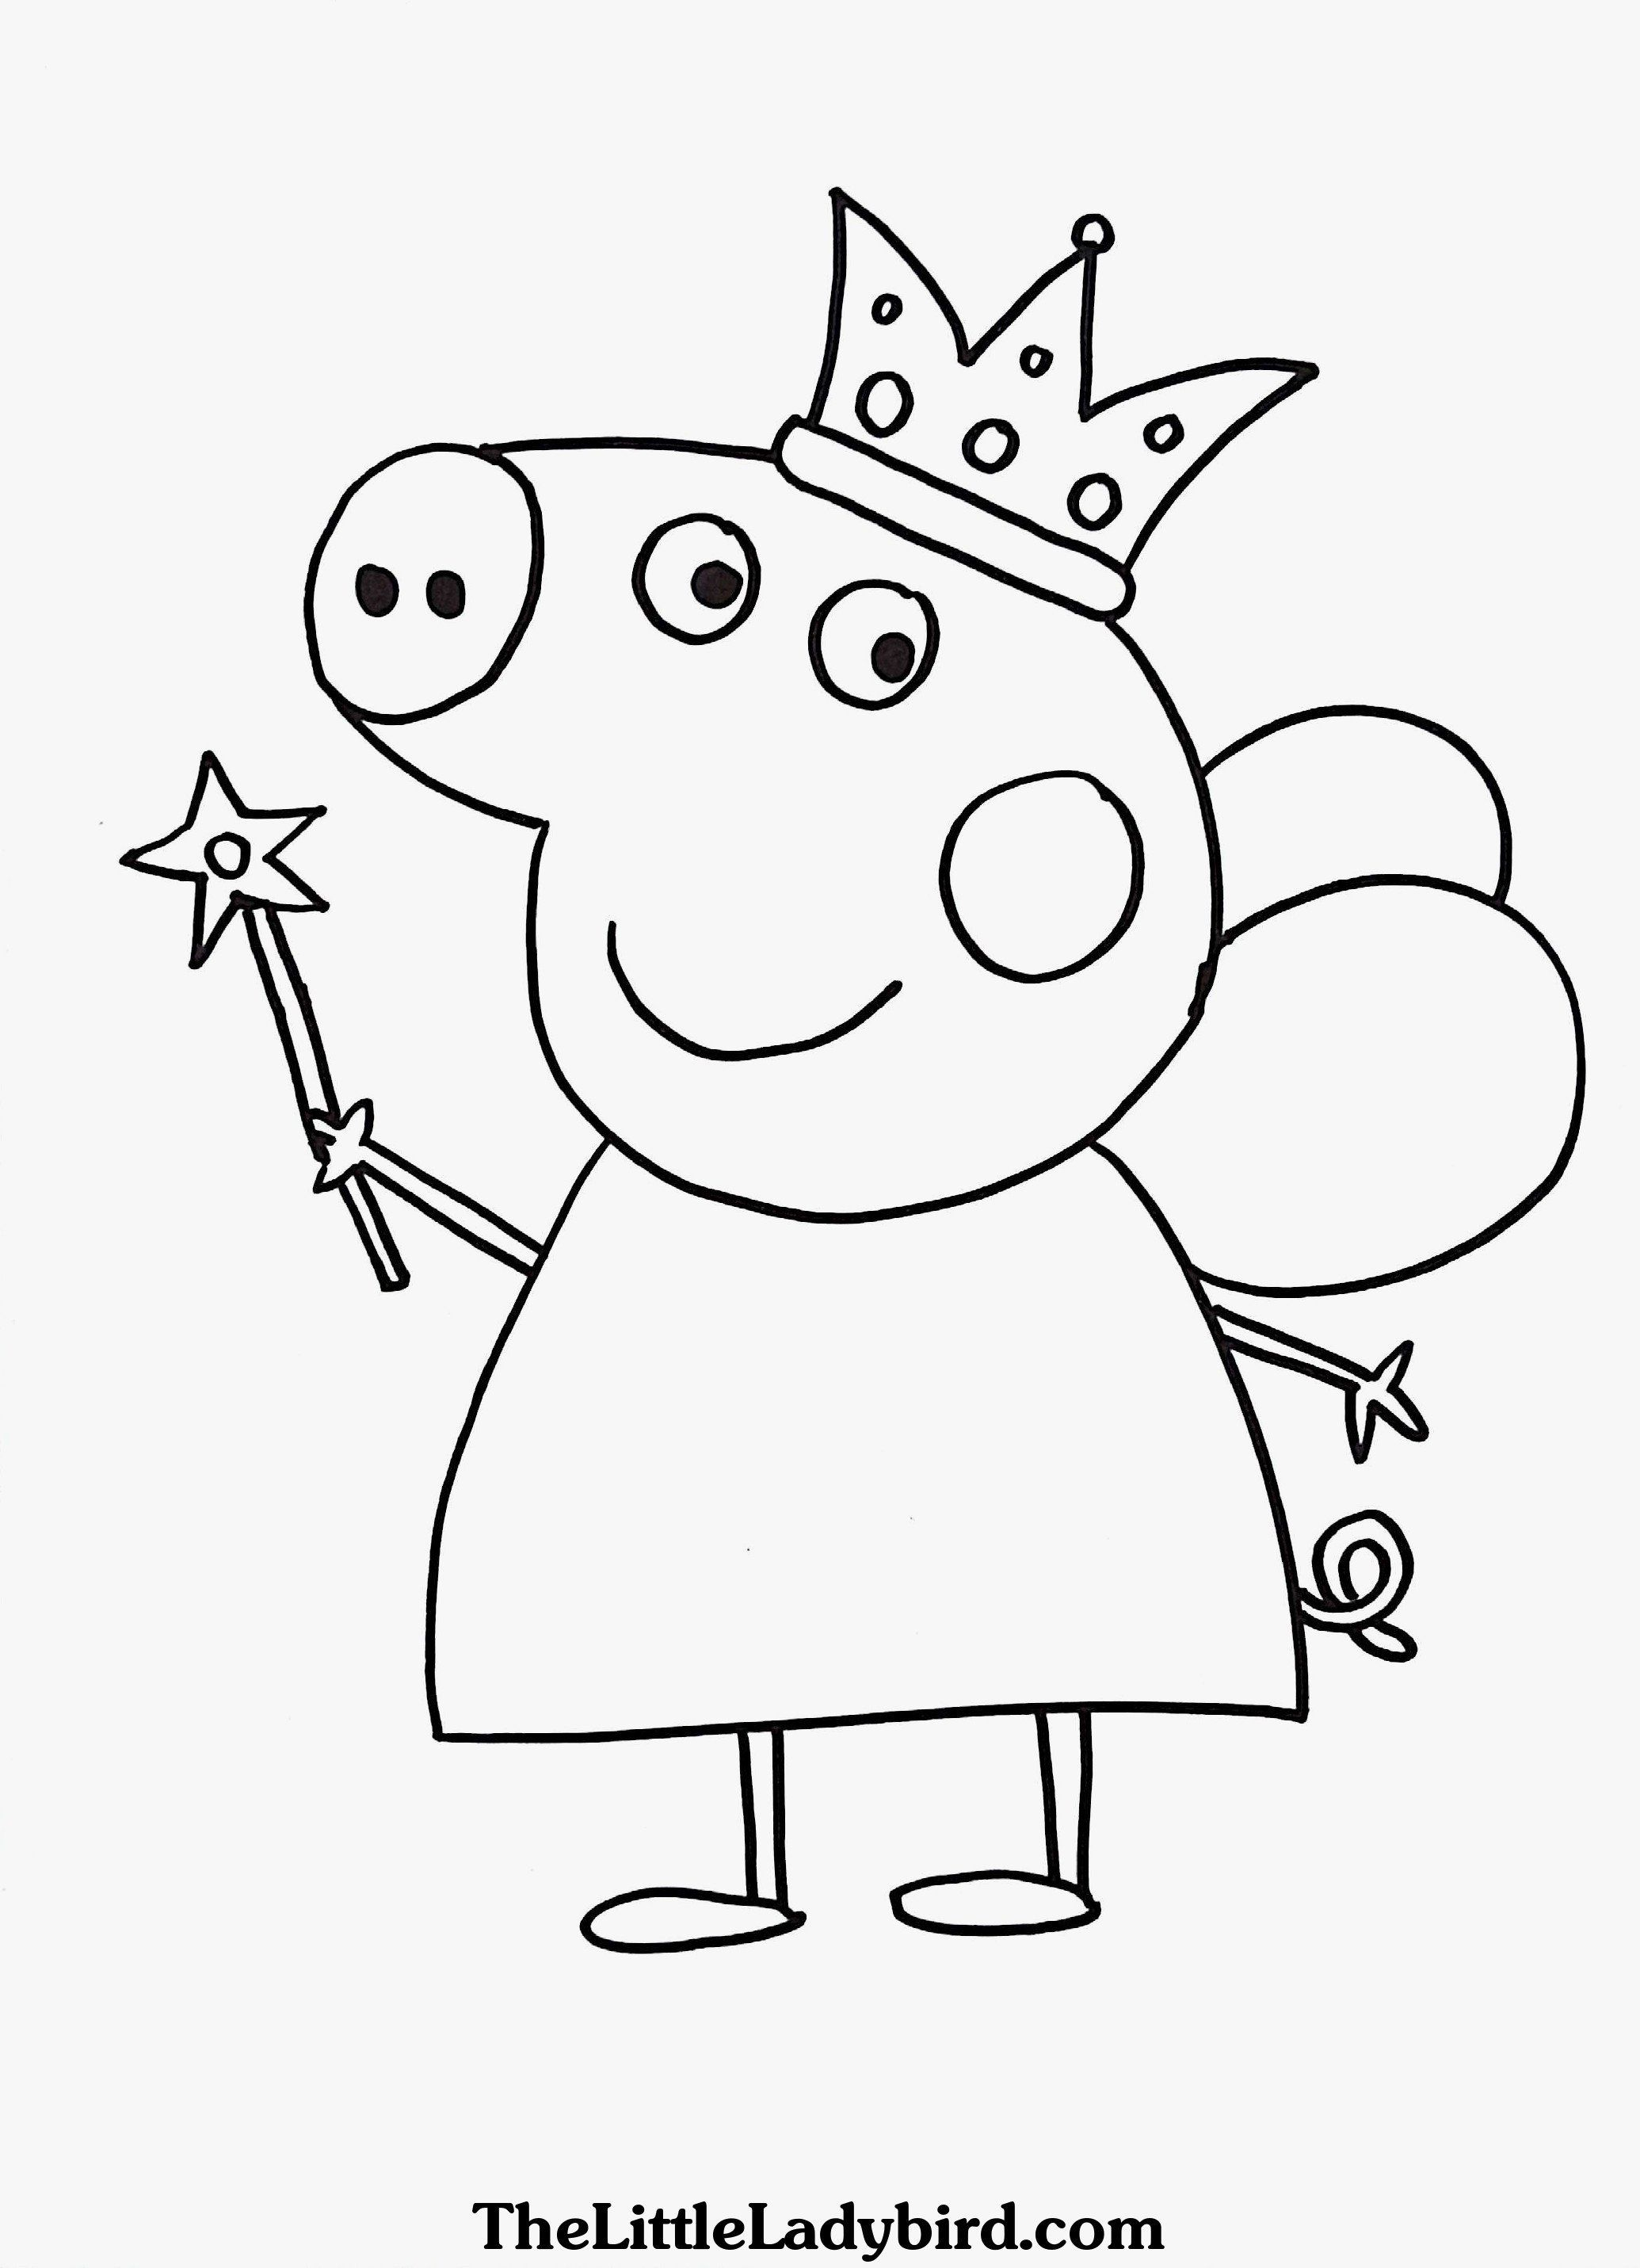 Peppa Pig Coloring Book Unique Coloring Peppa Pig Printables Image Inspirations Coloring Peppa Pig Coloring Pages Peppa Pig Colouring Birthday Coloring Pages